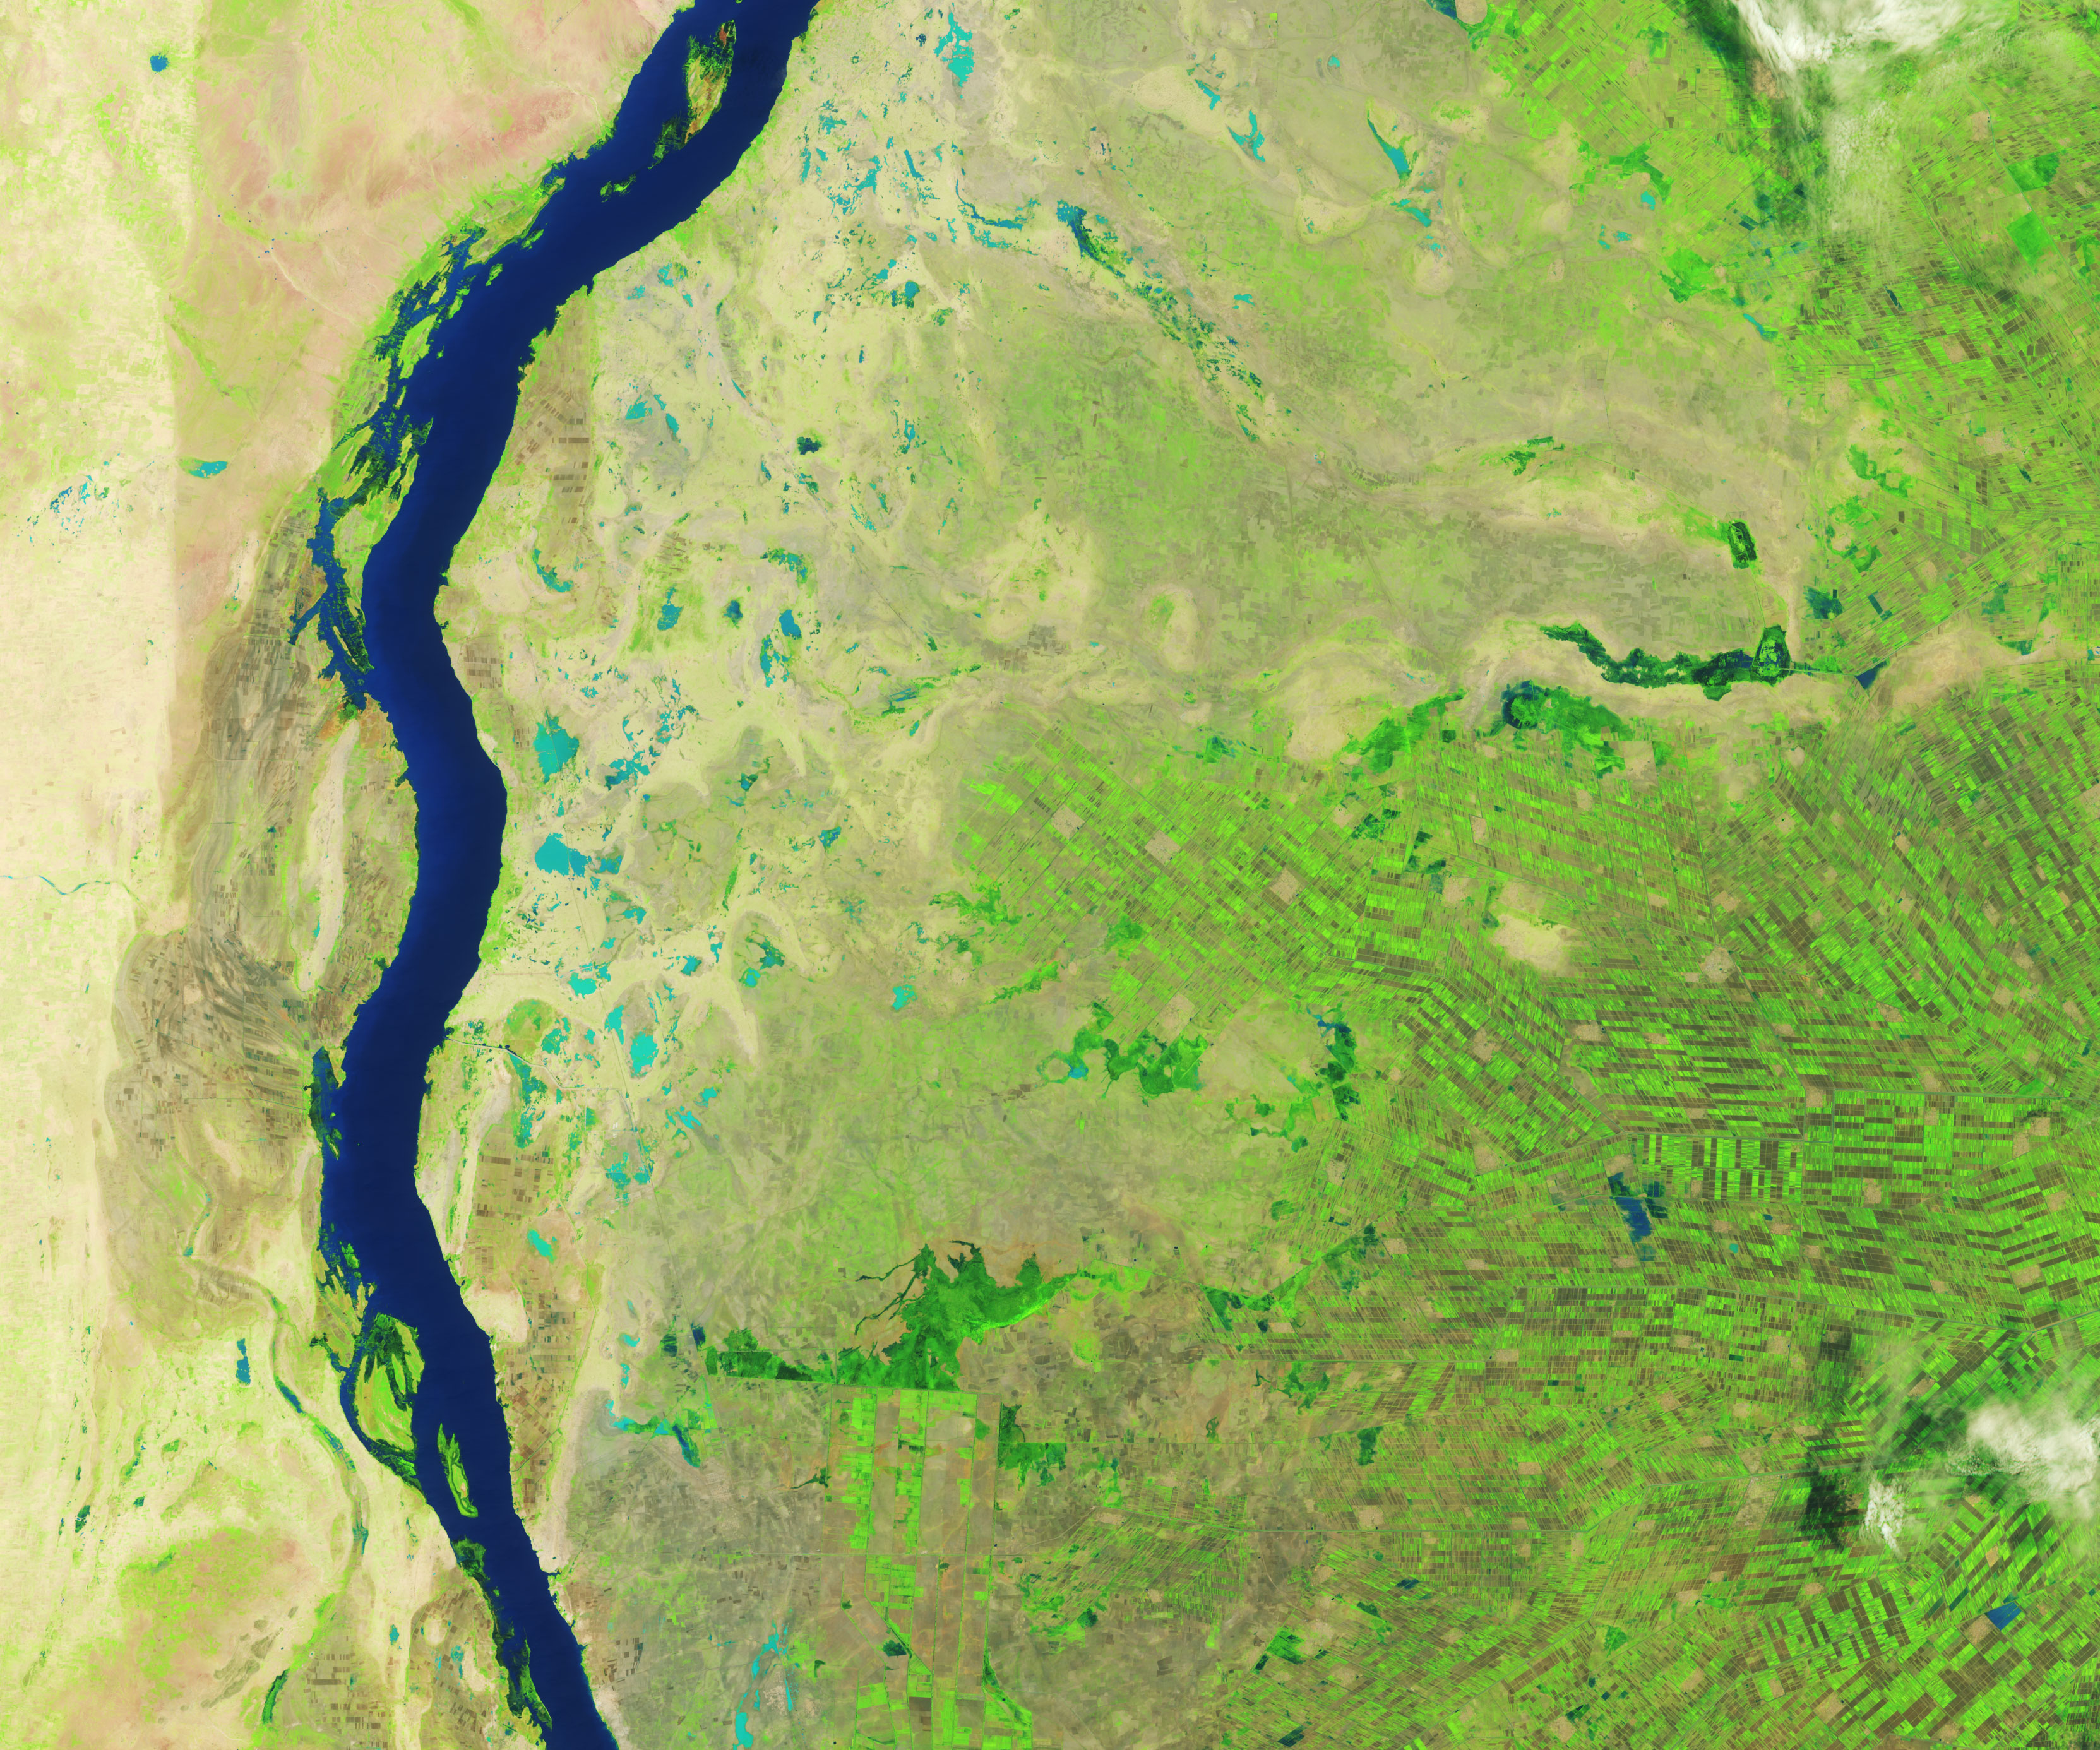 Floods Swamp Sudan - related image preview